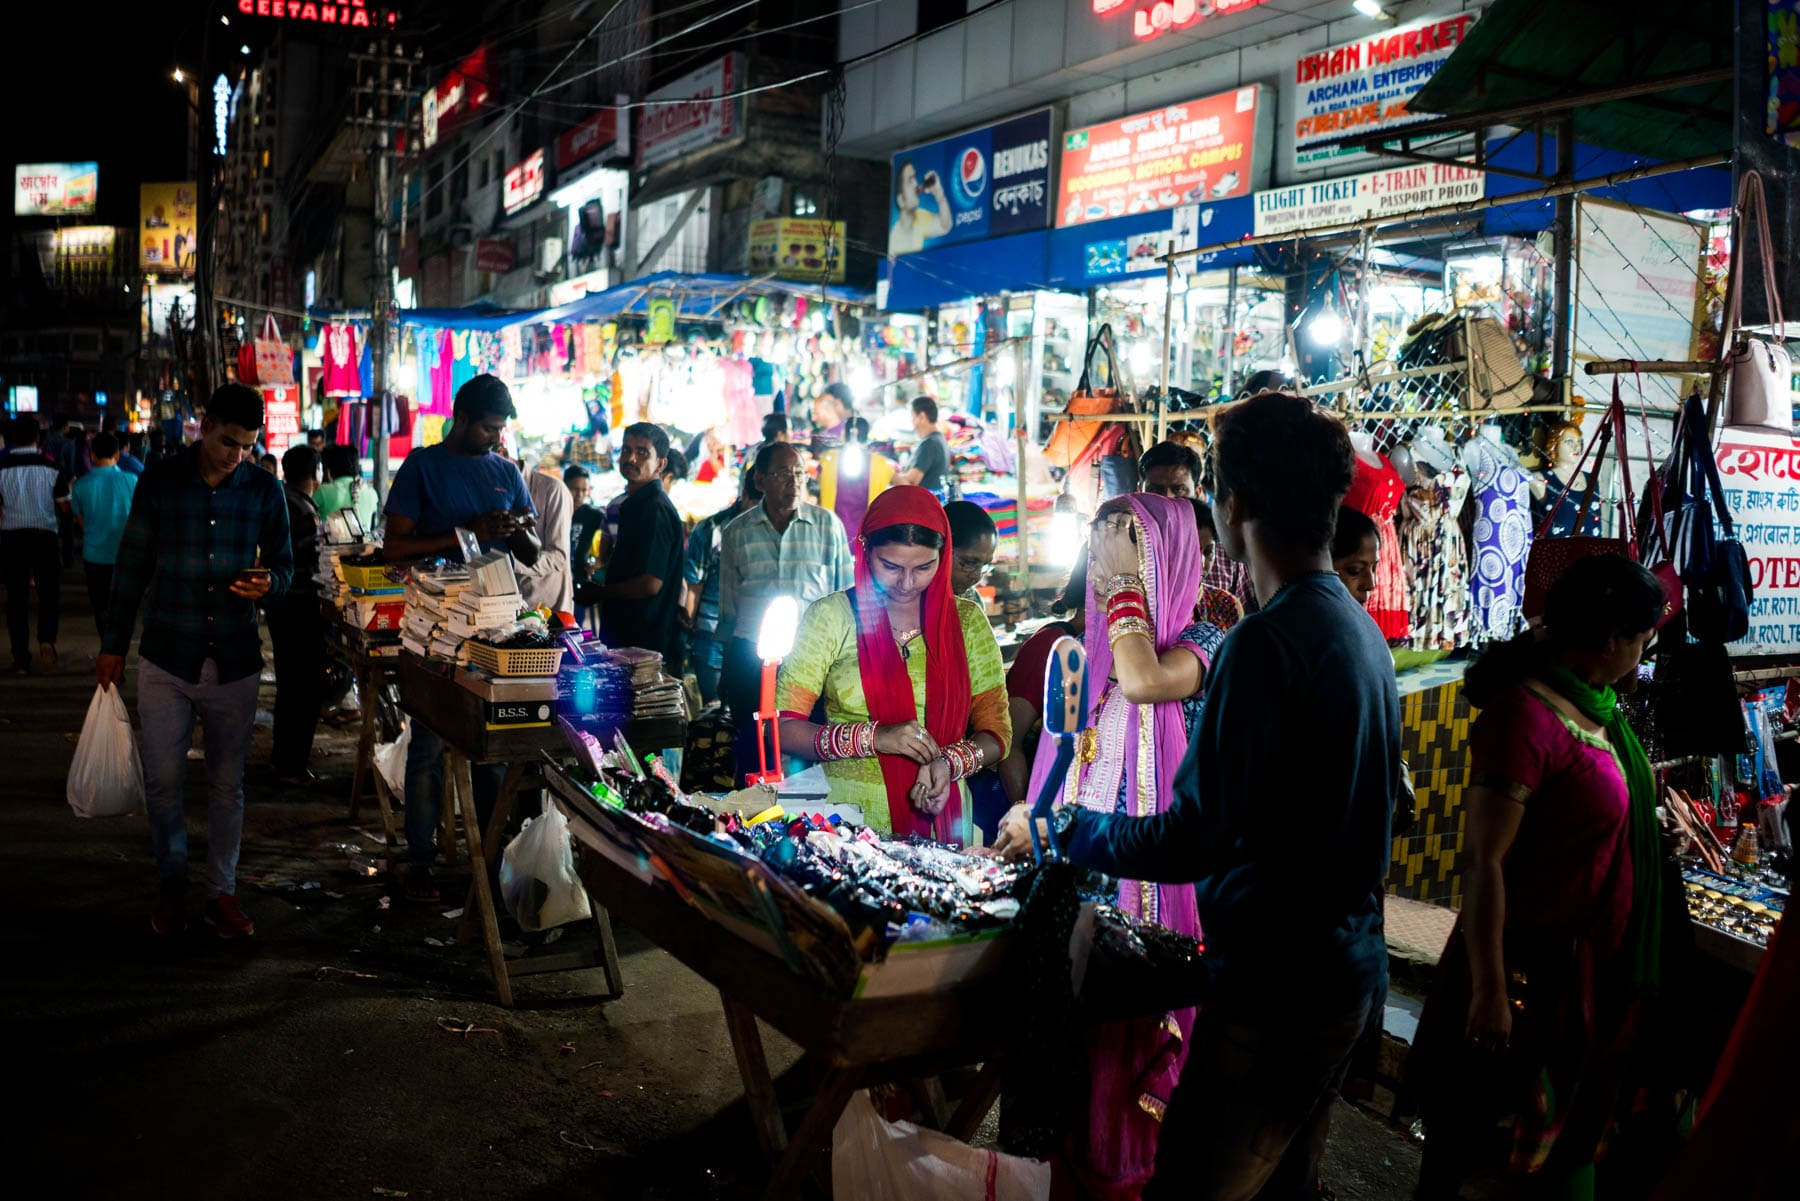 How to apply for an Arunachal Pradesh Protected Area Permit in Guwahati, Assam, India - Night market in Guwahati - Lost With Purpose